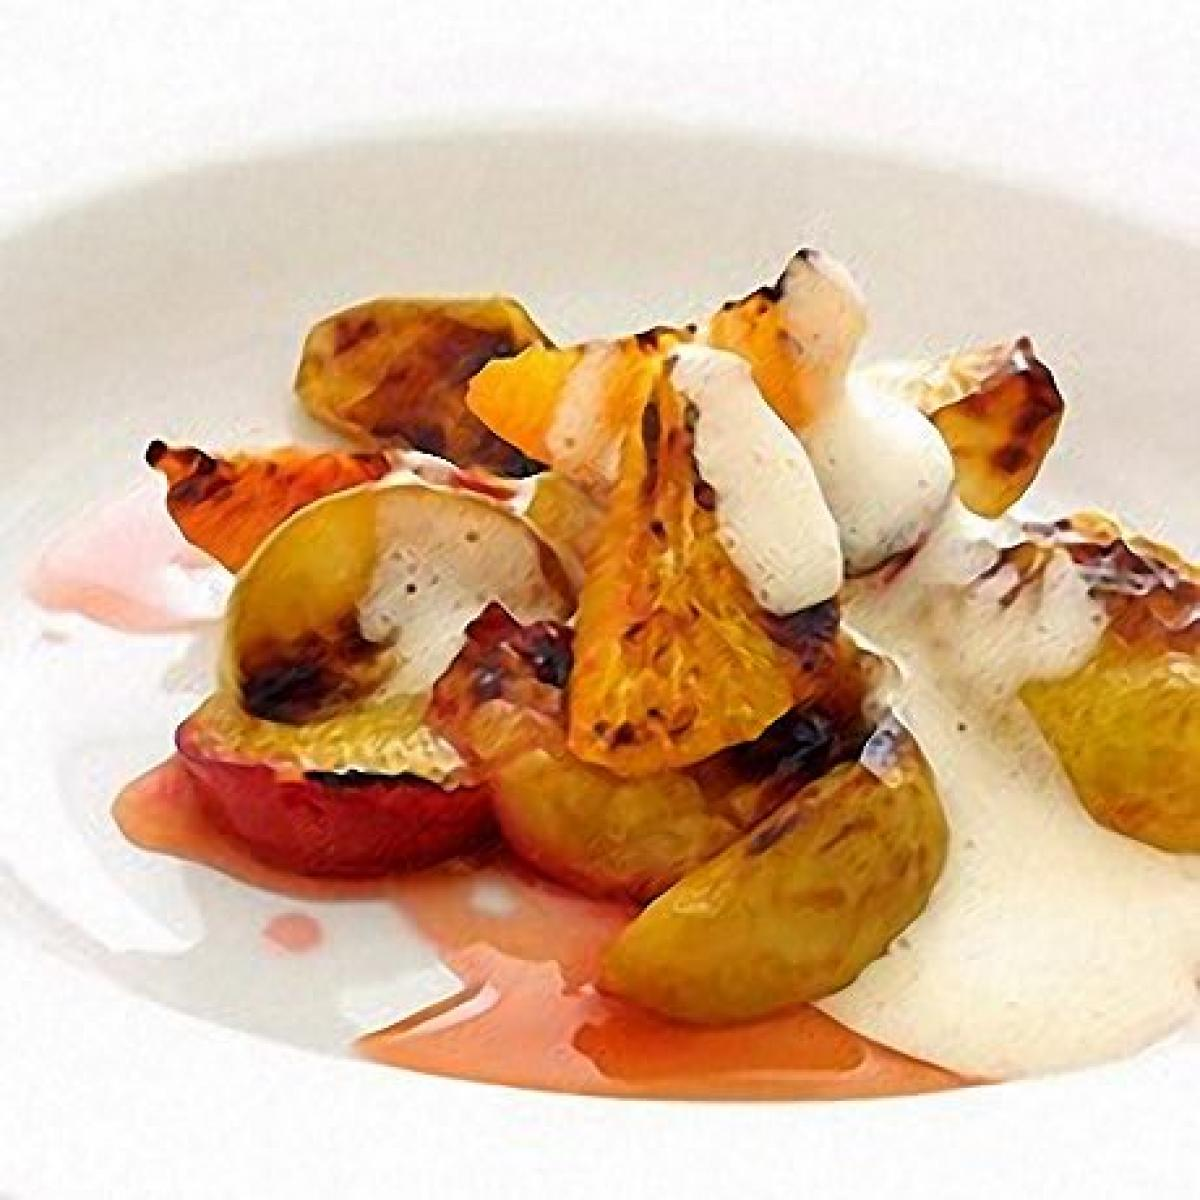 A picture of Delia's Grilled Autumn Fruits with Sabayon Cider Sauce recipe